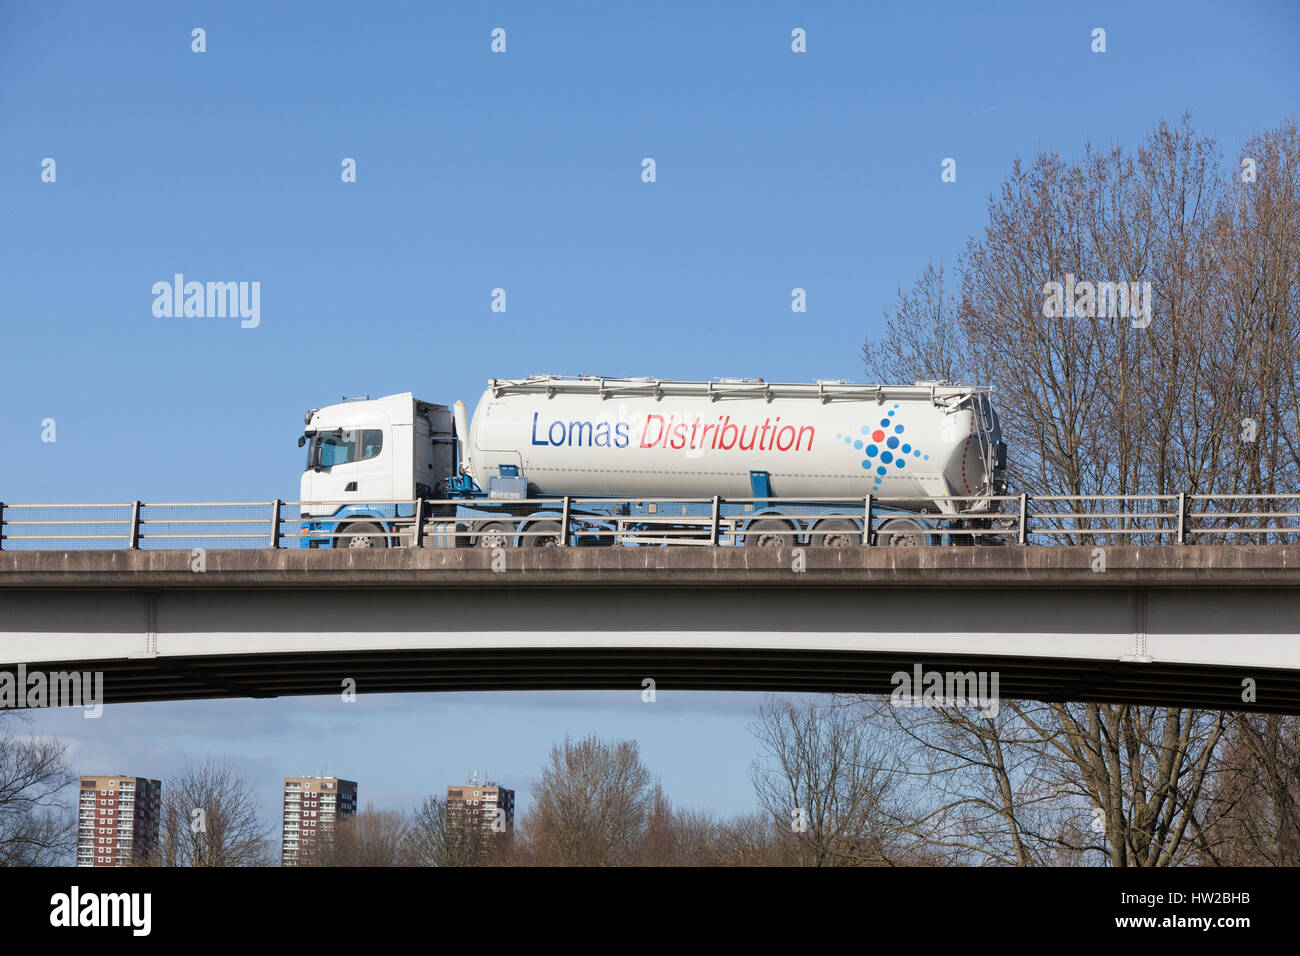 Lomas Distribution tanker on the road in the Midlands - Stock Image